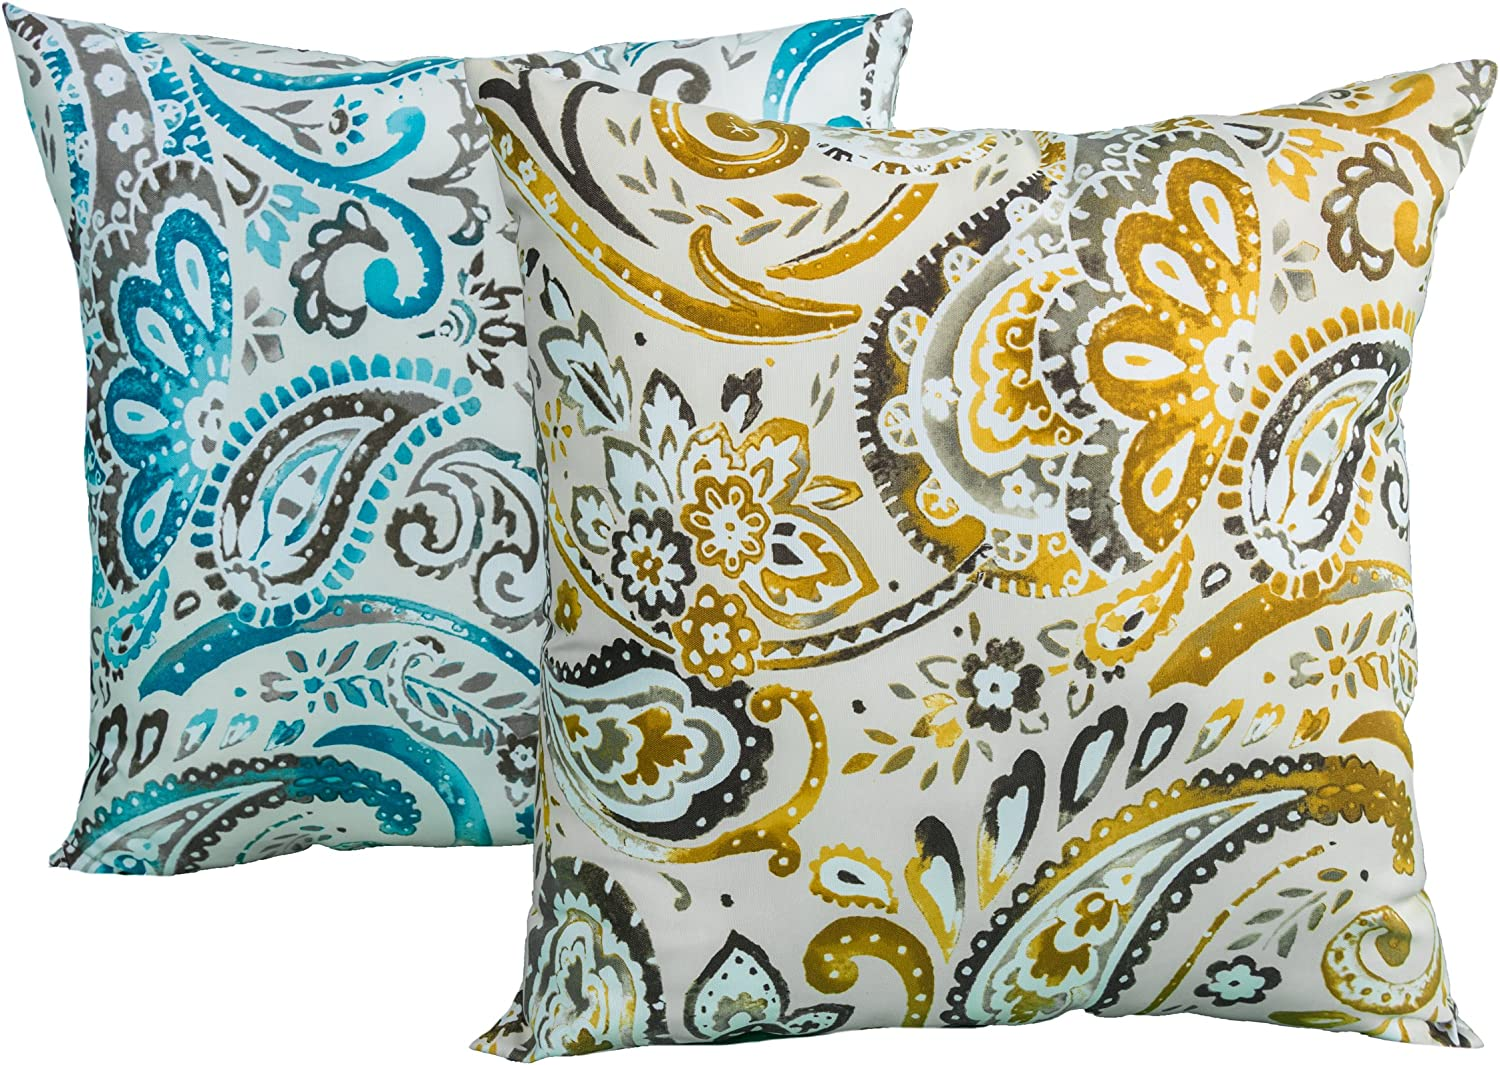 Rizzy Home TFV021 Prefilled with Knife Cut Edges Printed on Both Sides Decorative Pillow, 22 by 22-Inch, Starlight